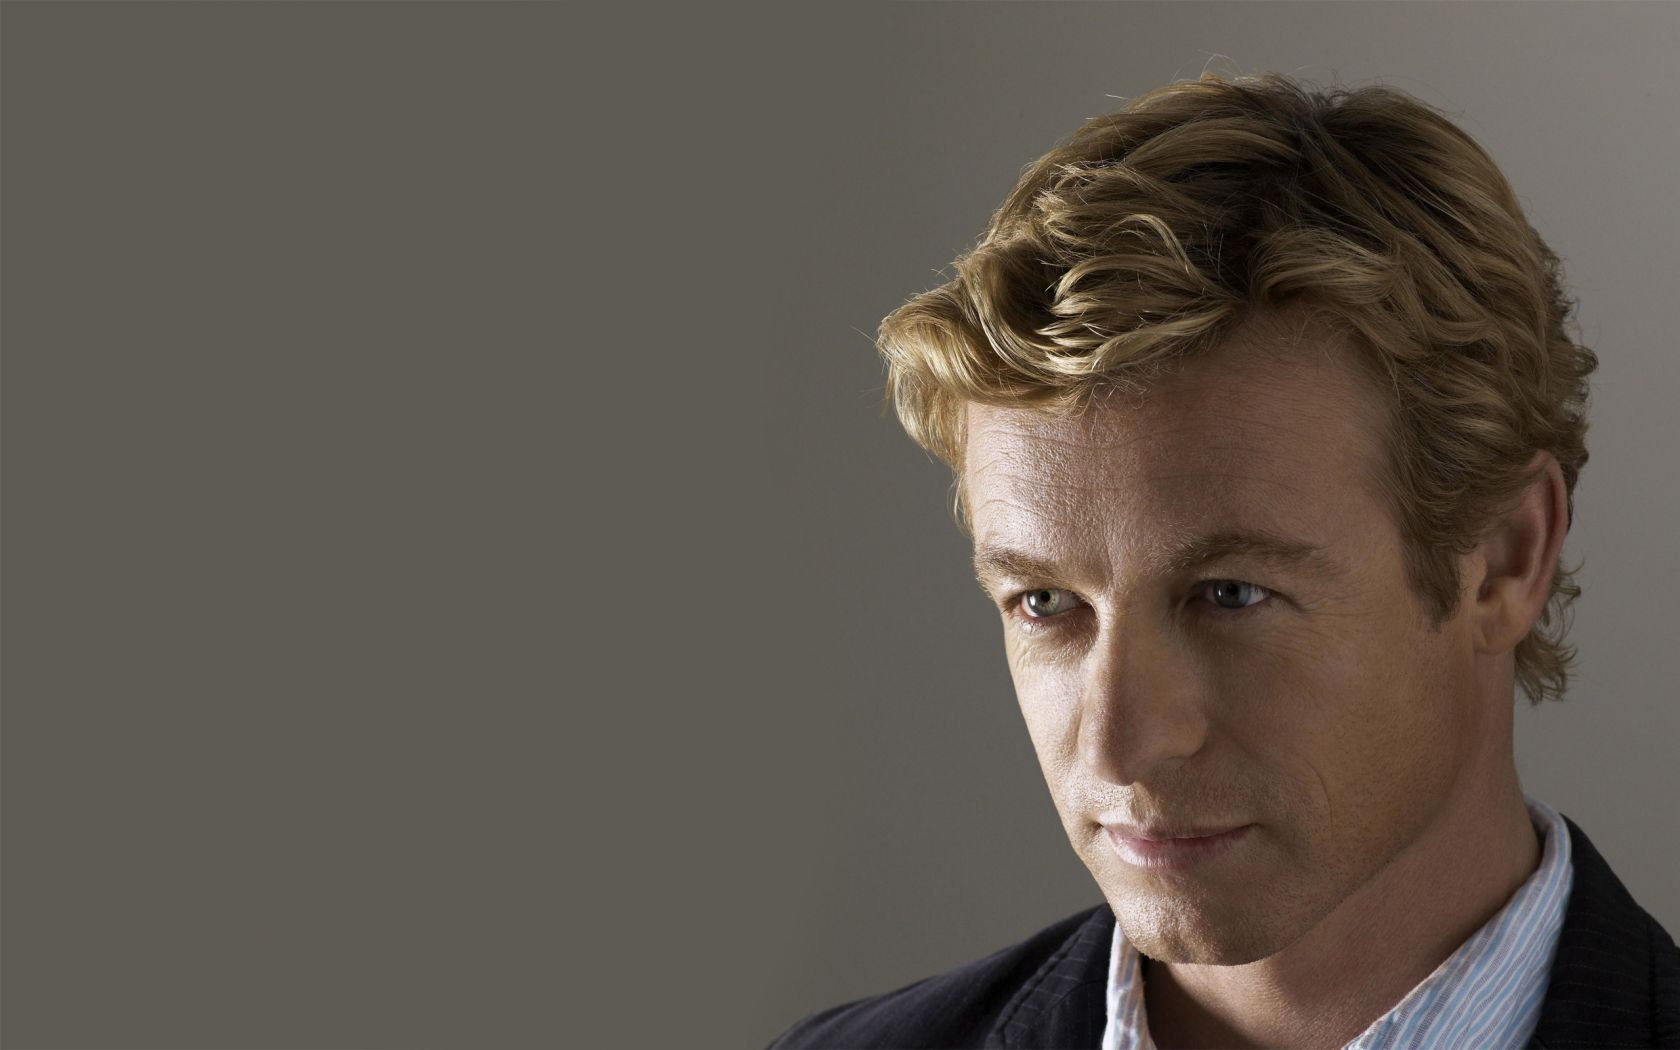 The Mentalist Quotes Wallpaper Simon Baker Wallpapers Wallpaper High Definition High